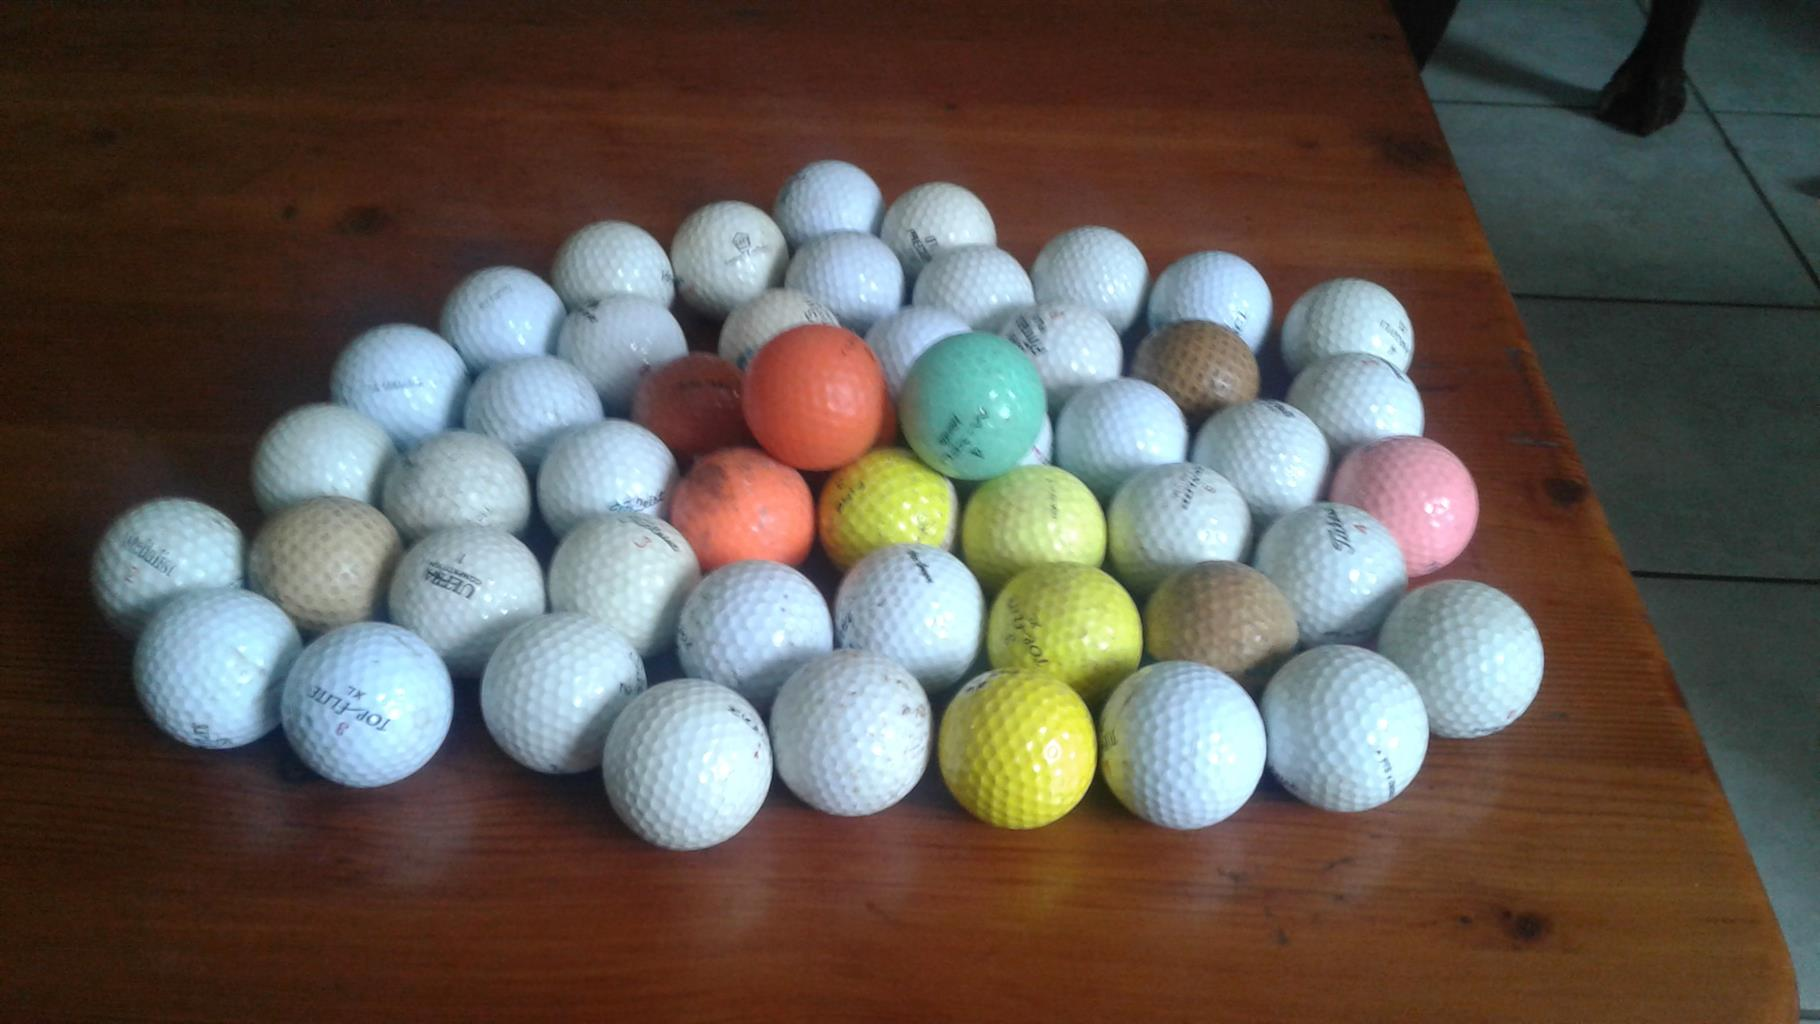 51 different practice gholf balls